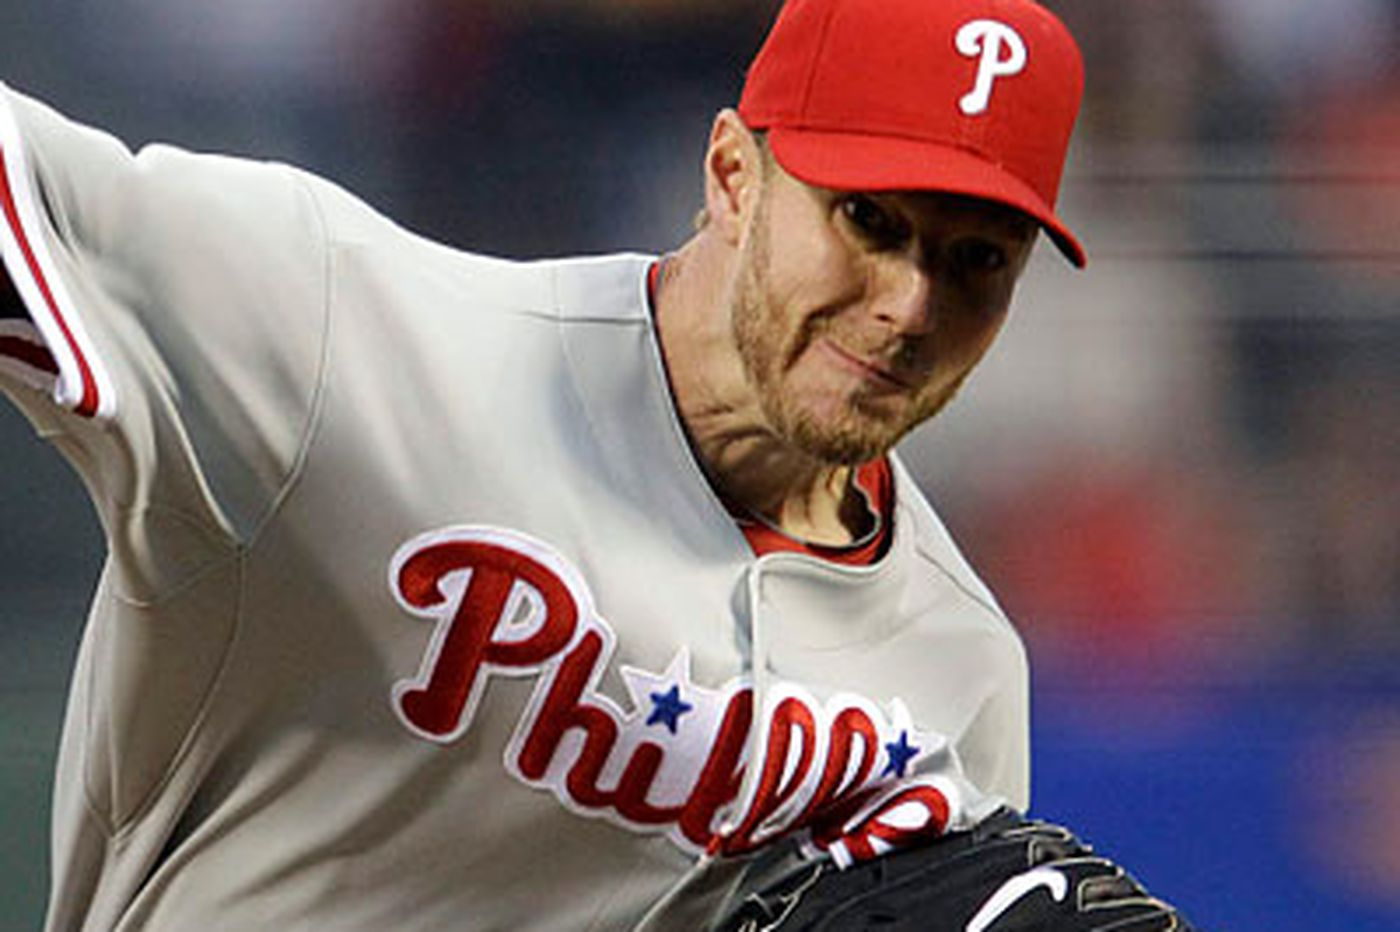 Giants give Halladay first loss